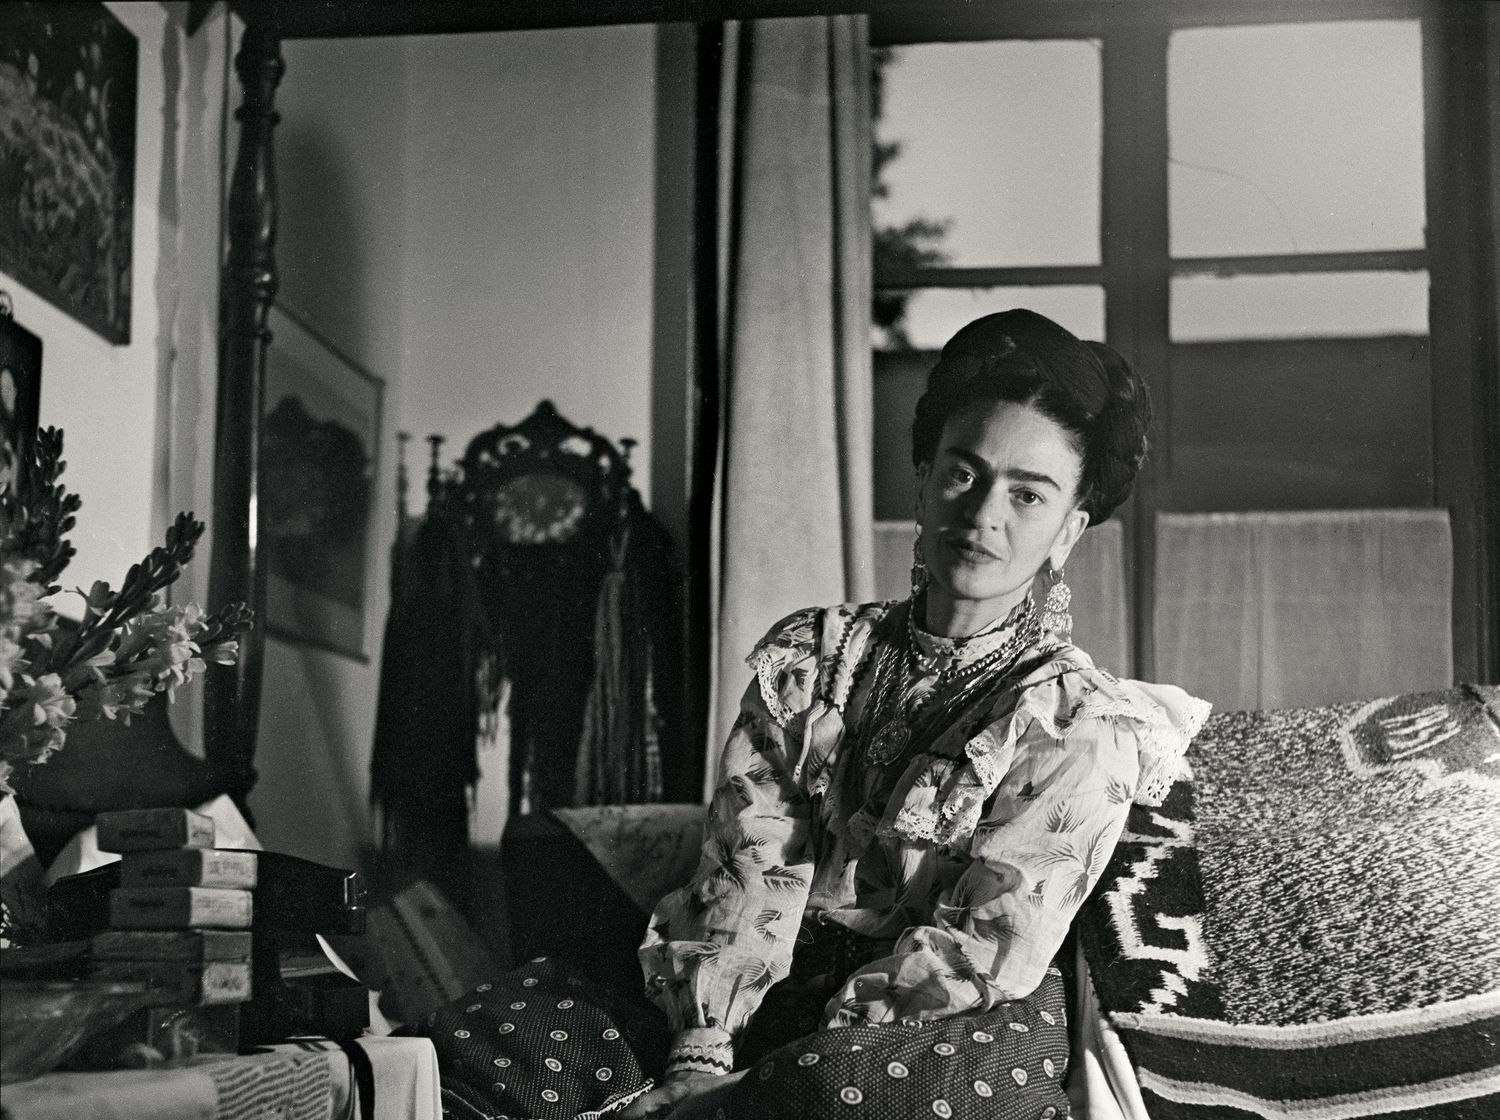 Is Frida Kahlo a good role model?